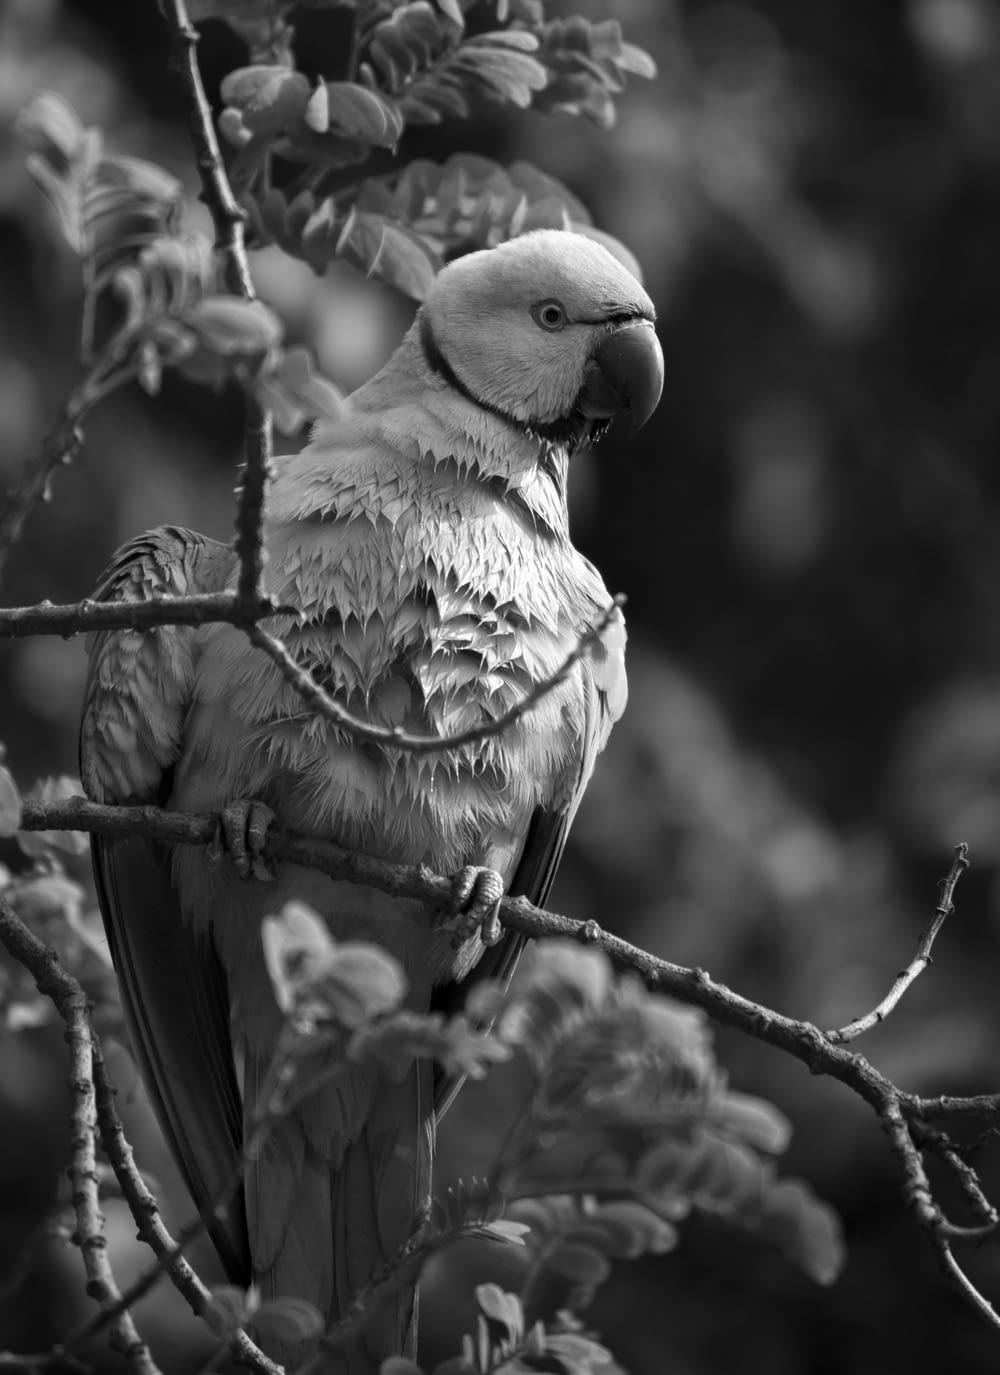 grayscale photo of bird perch on branch of tree